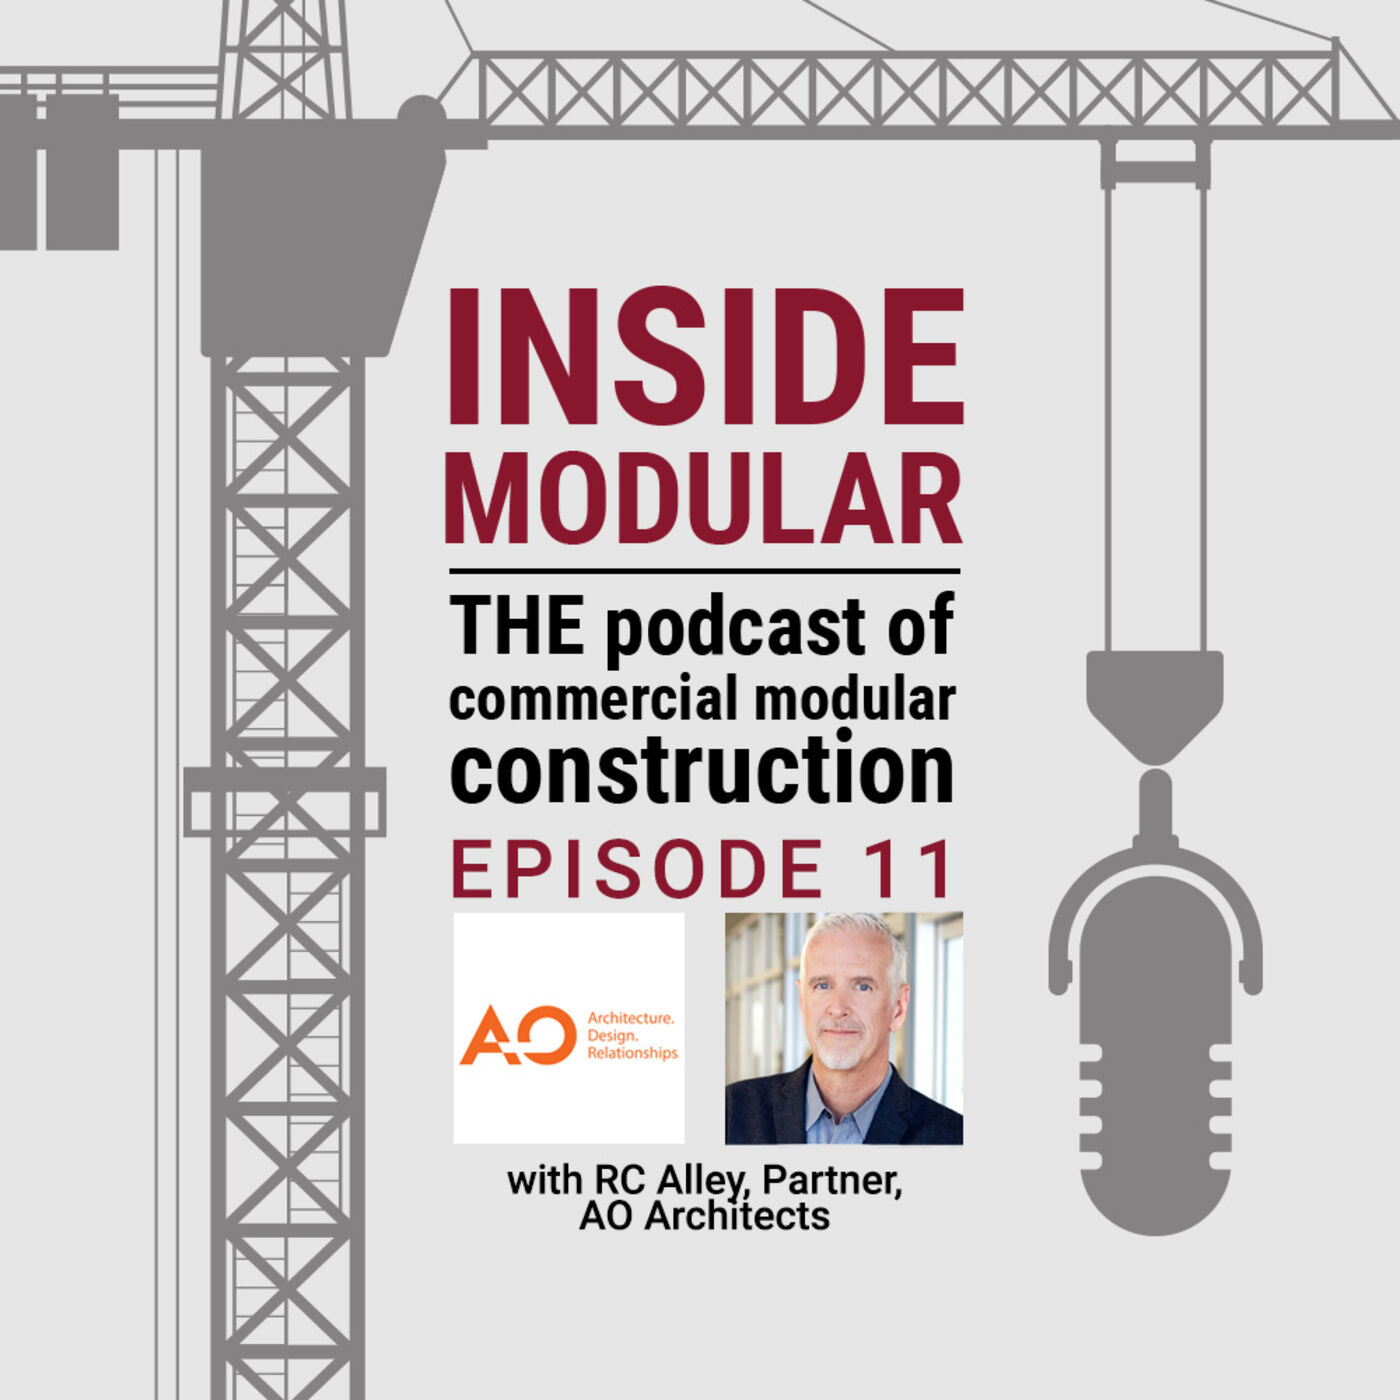 Affordable Housing, Part 1: Modular Housing Design w/ AO Architects